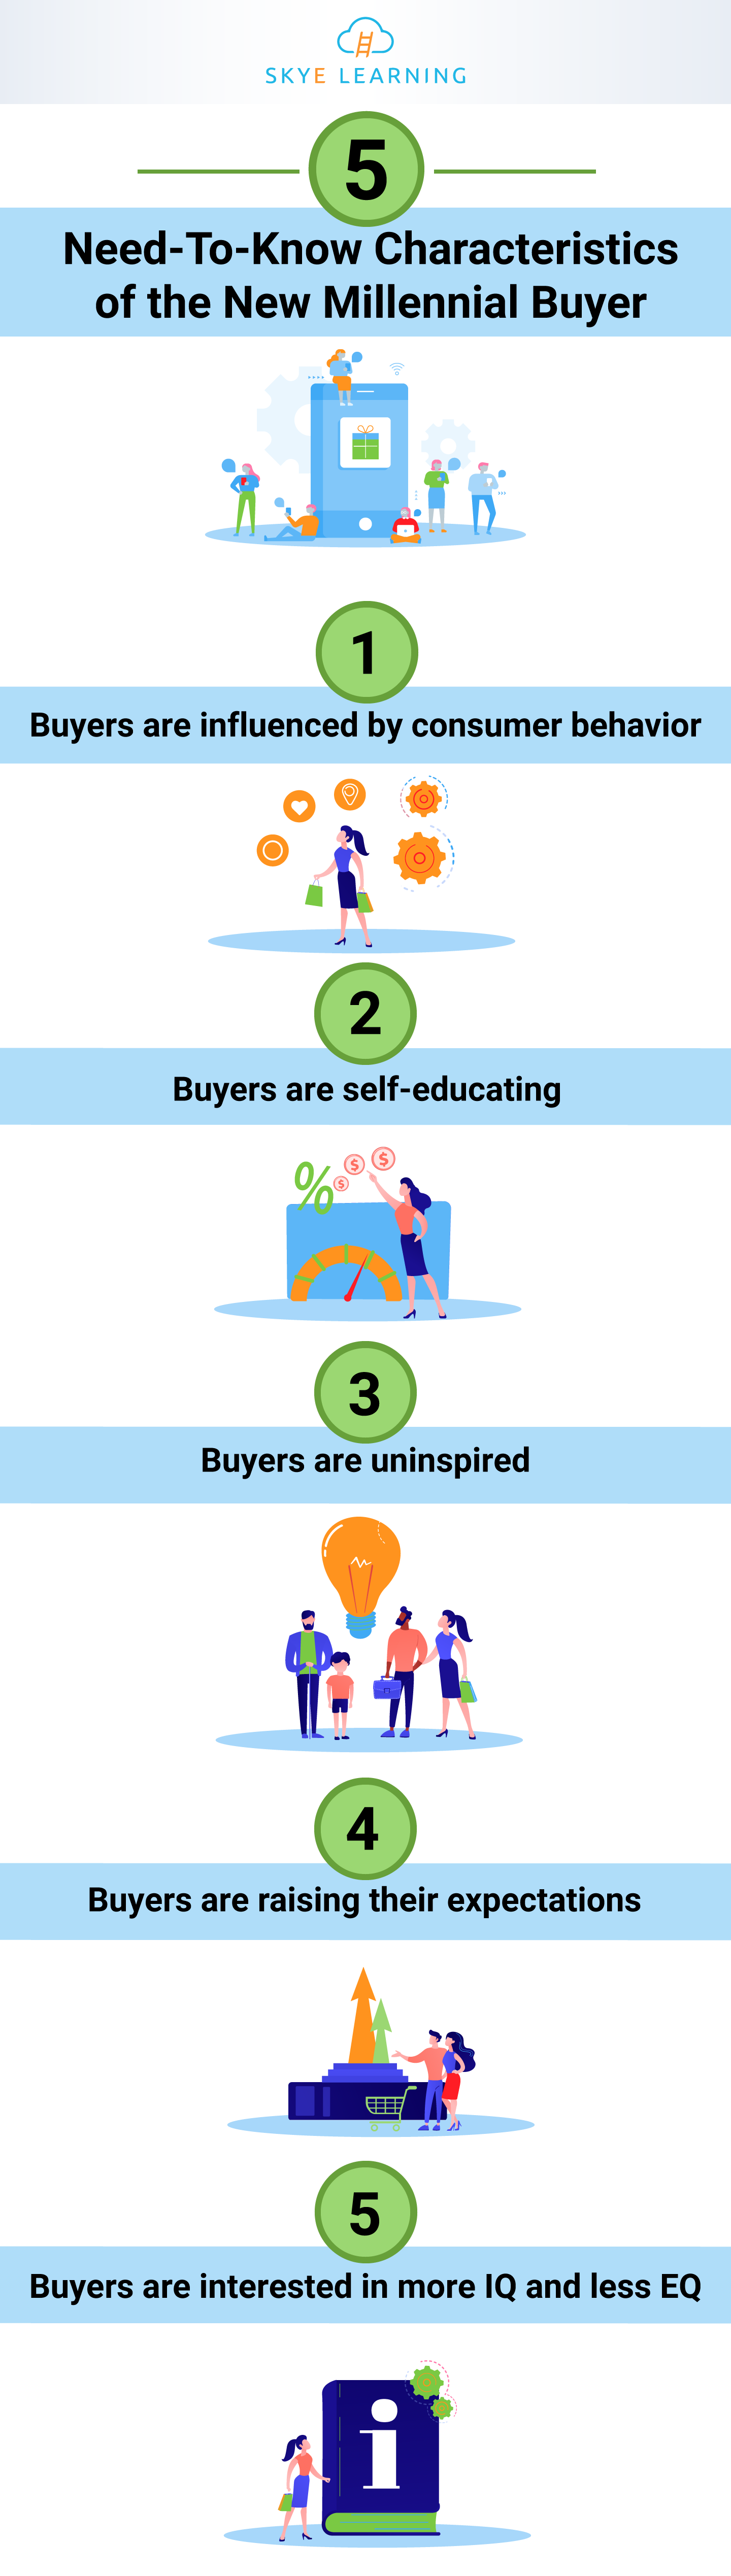 5-Need-To-Know-Characteristics-of-the-New-Millennial-Buyer-SL-IG